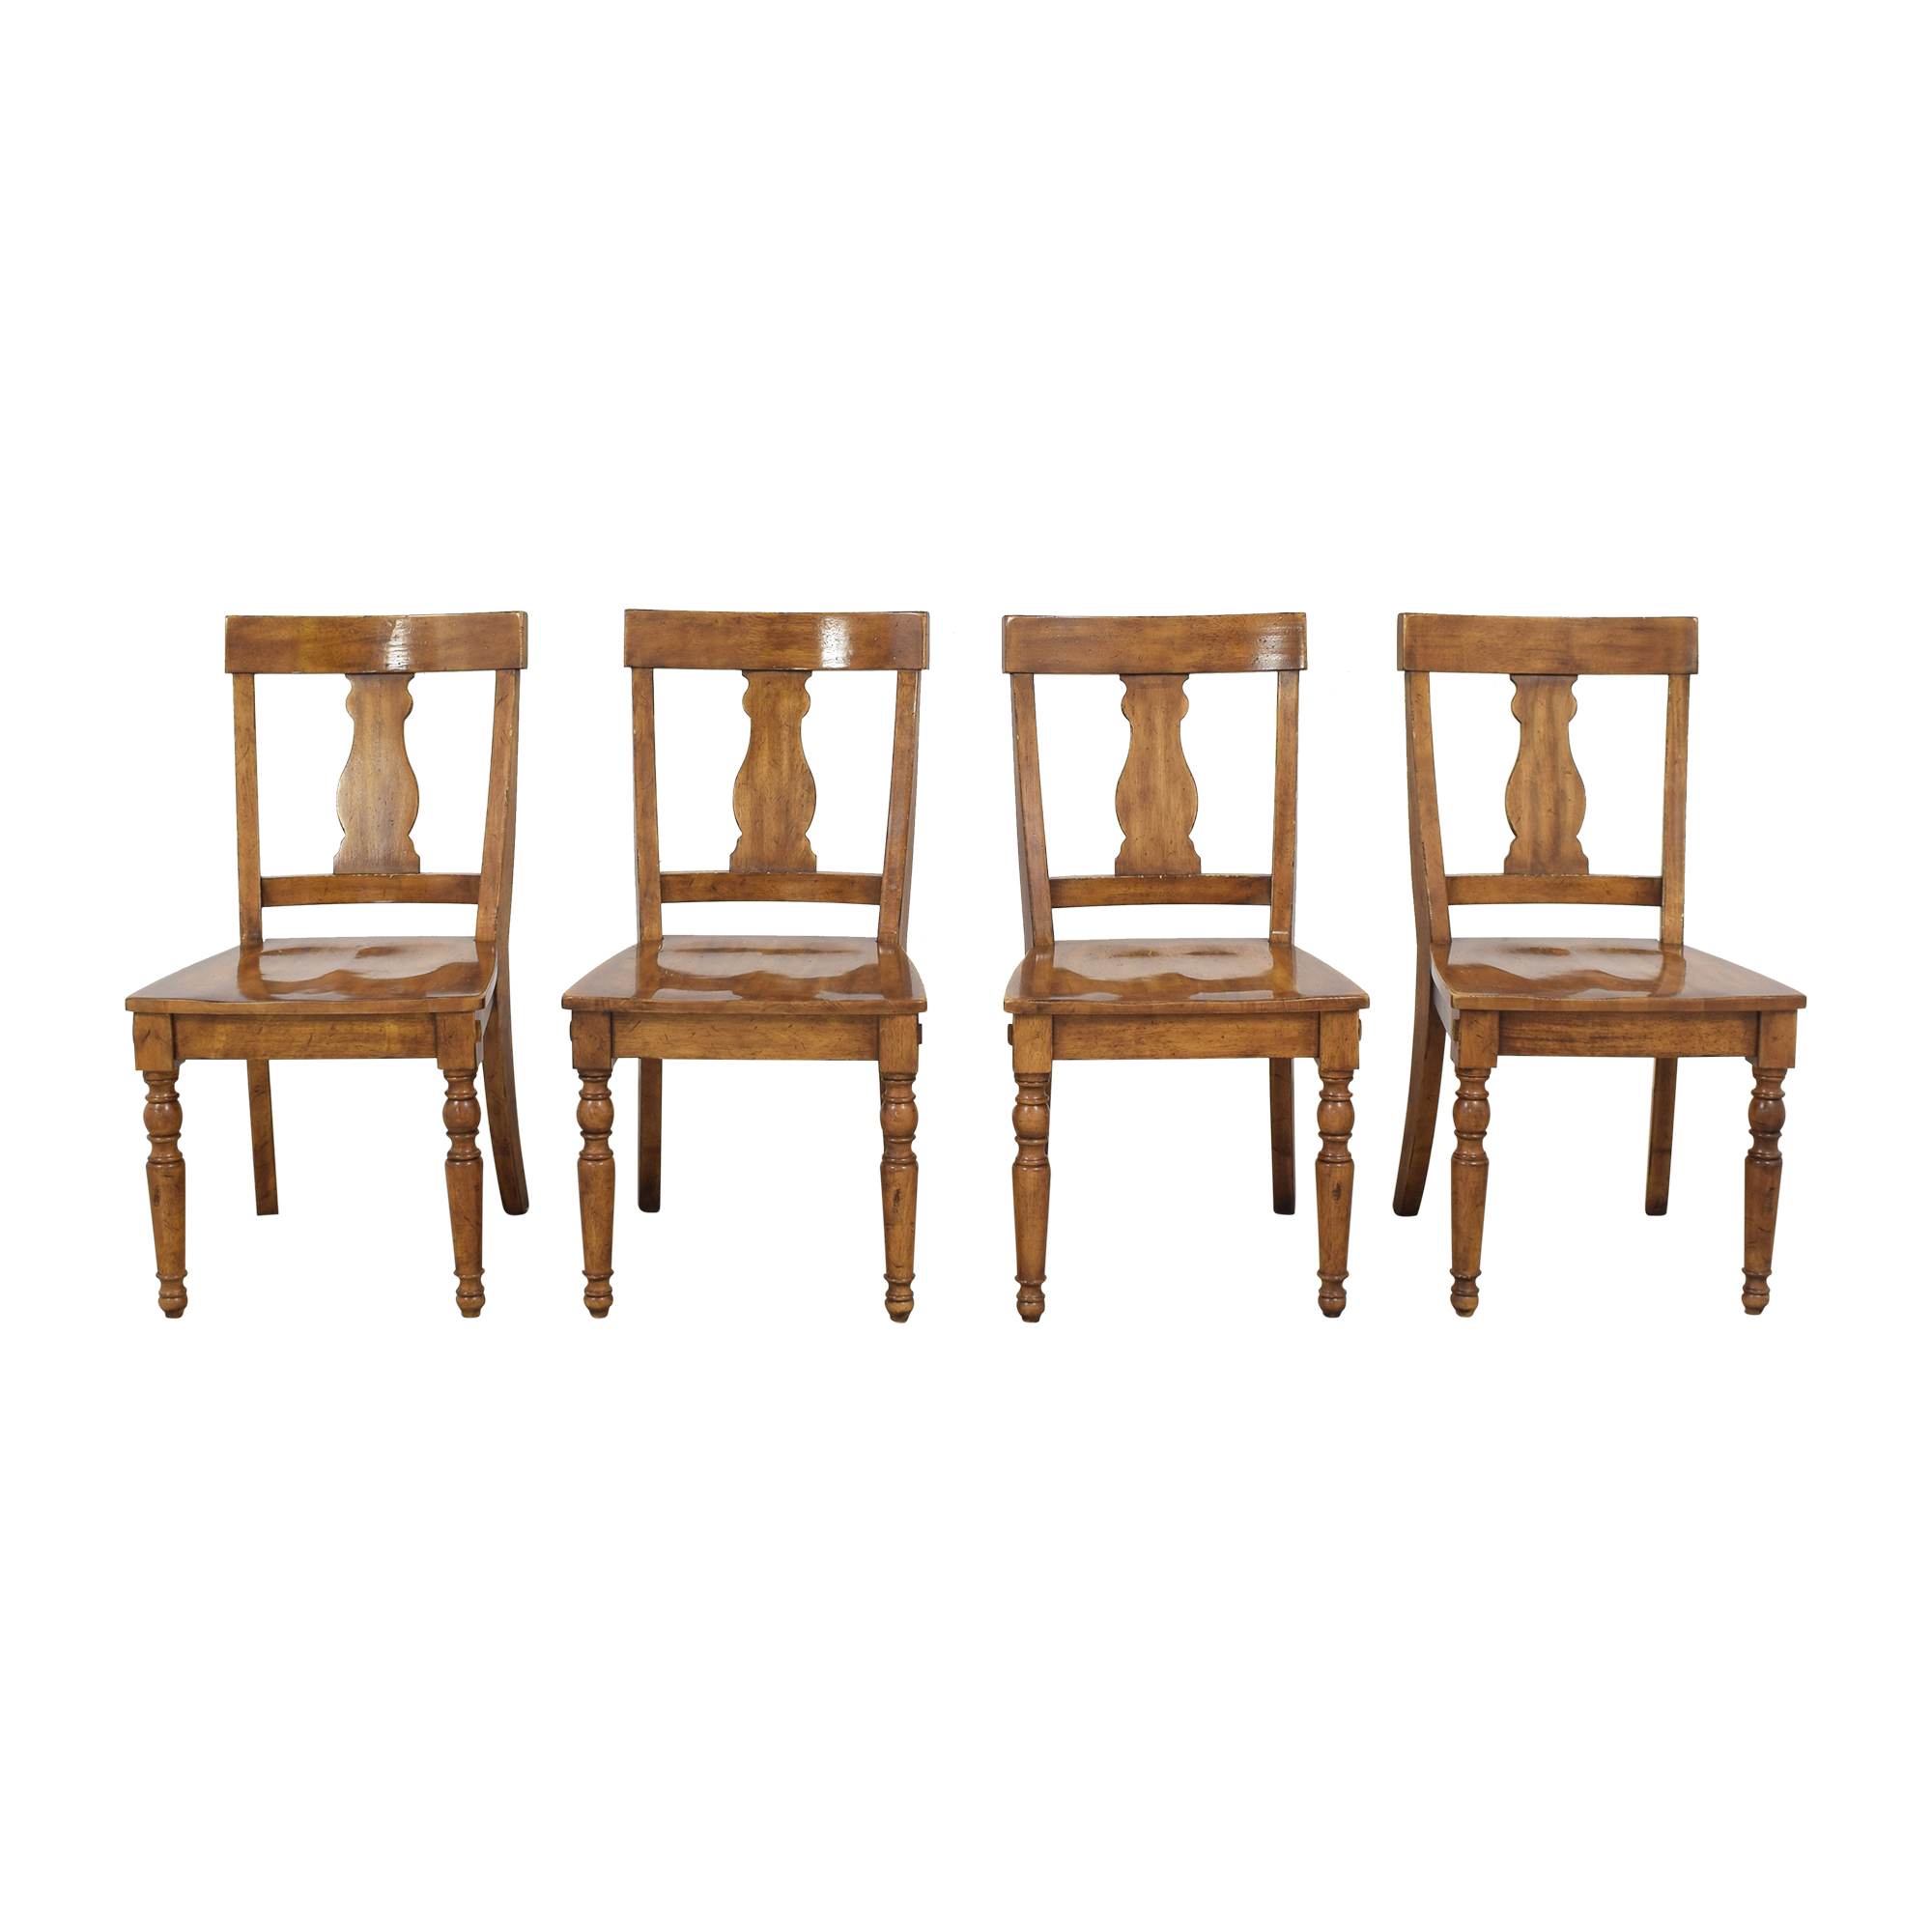 Pottery Barn Dining Chairs / Chairs